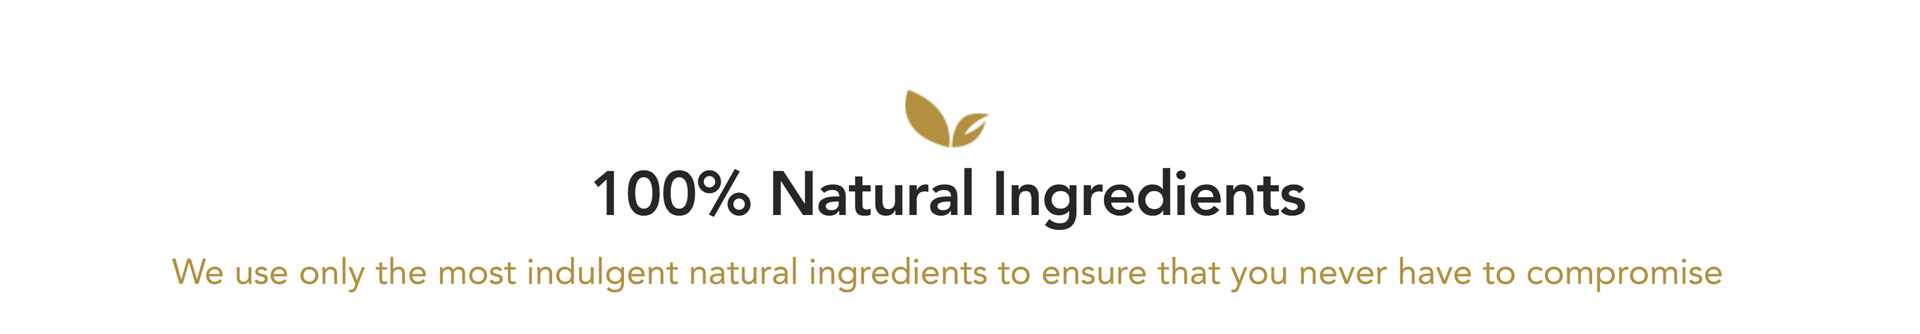 INIKA - 100% Natural Ingredients